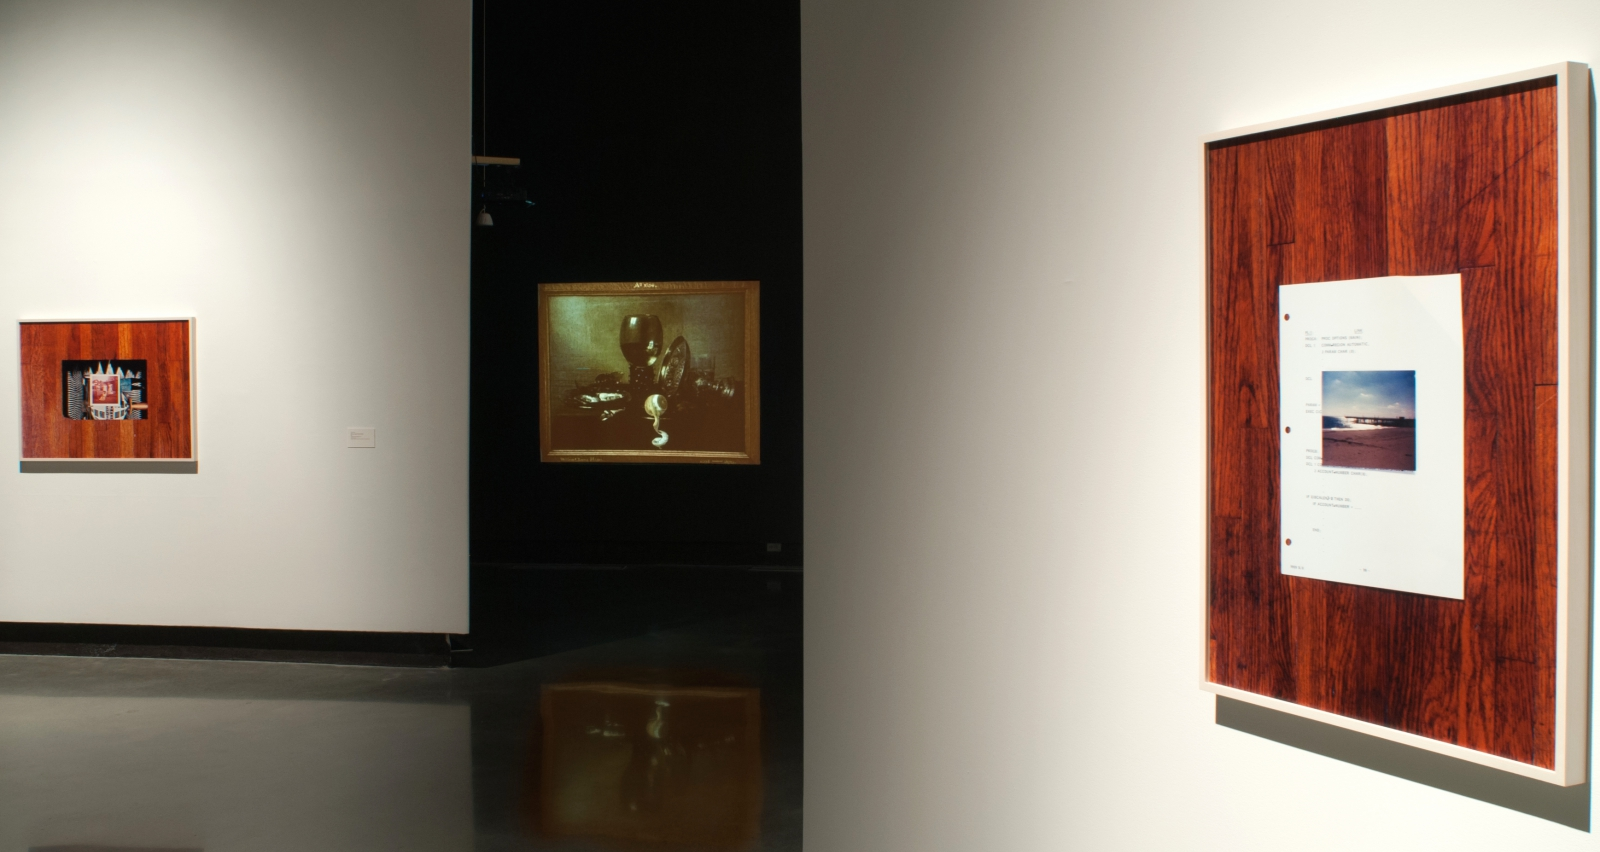 Installation view of Harun Farocki, 'Still Life,' 1997 and Leslie Hewitt, Riffs on Real Time (4 of 10), Right, (5 of 10), Left, 2013.